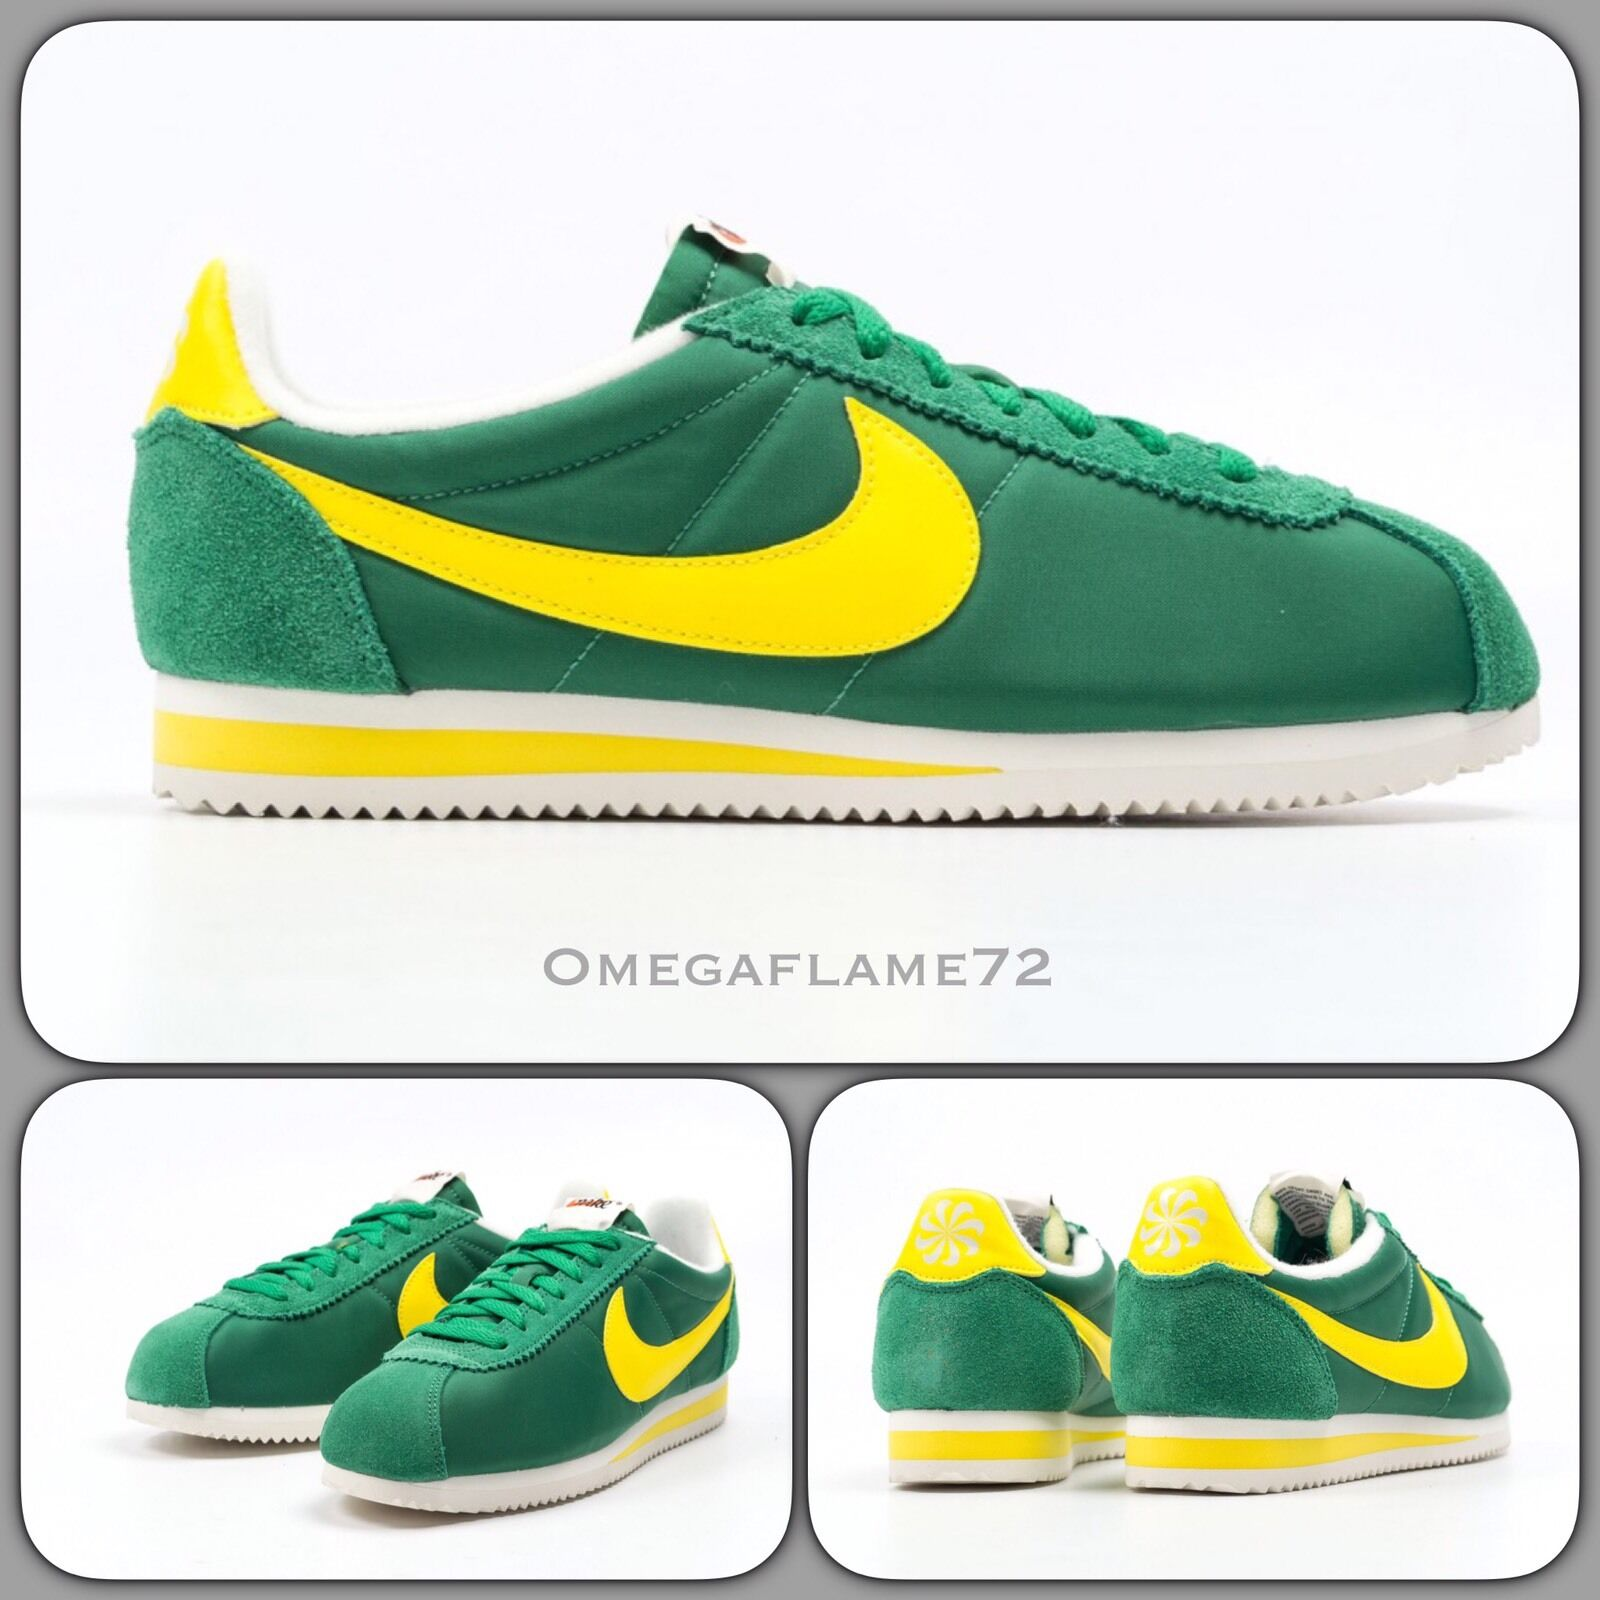 Nike Cortez Oregon Green & Maze Yellow 844855-370 sz, UK10.5, US 11.5